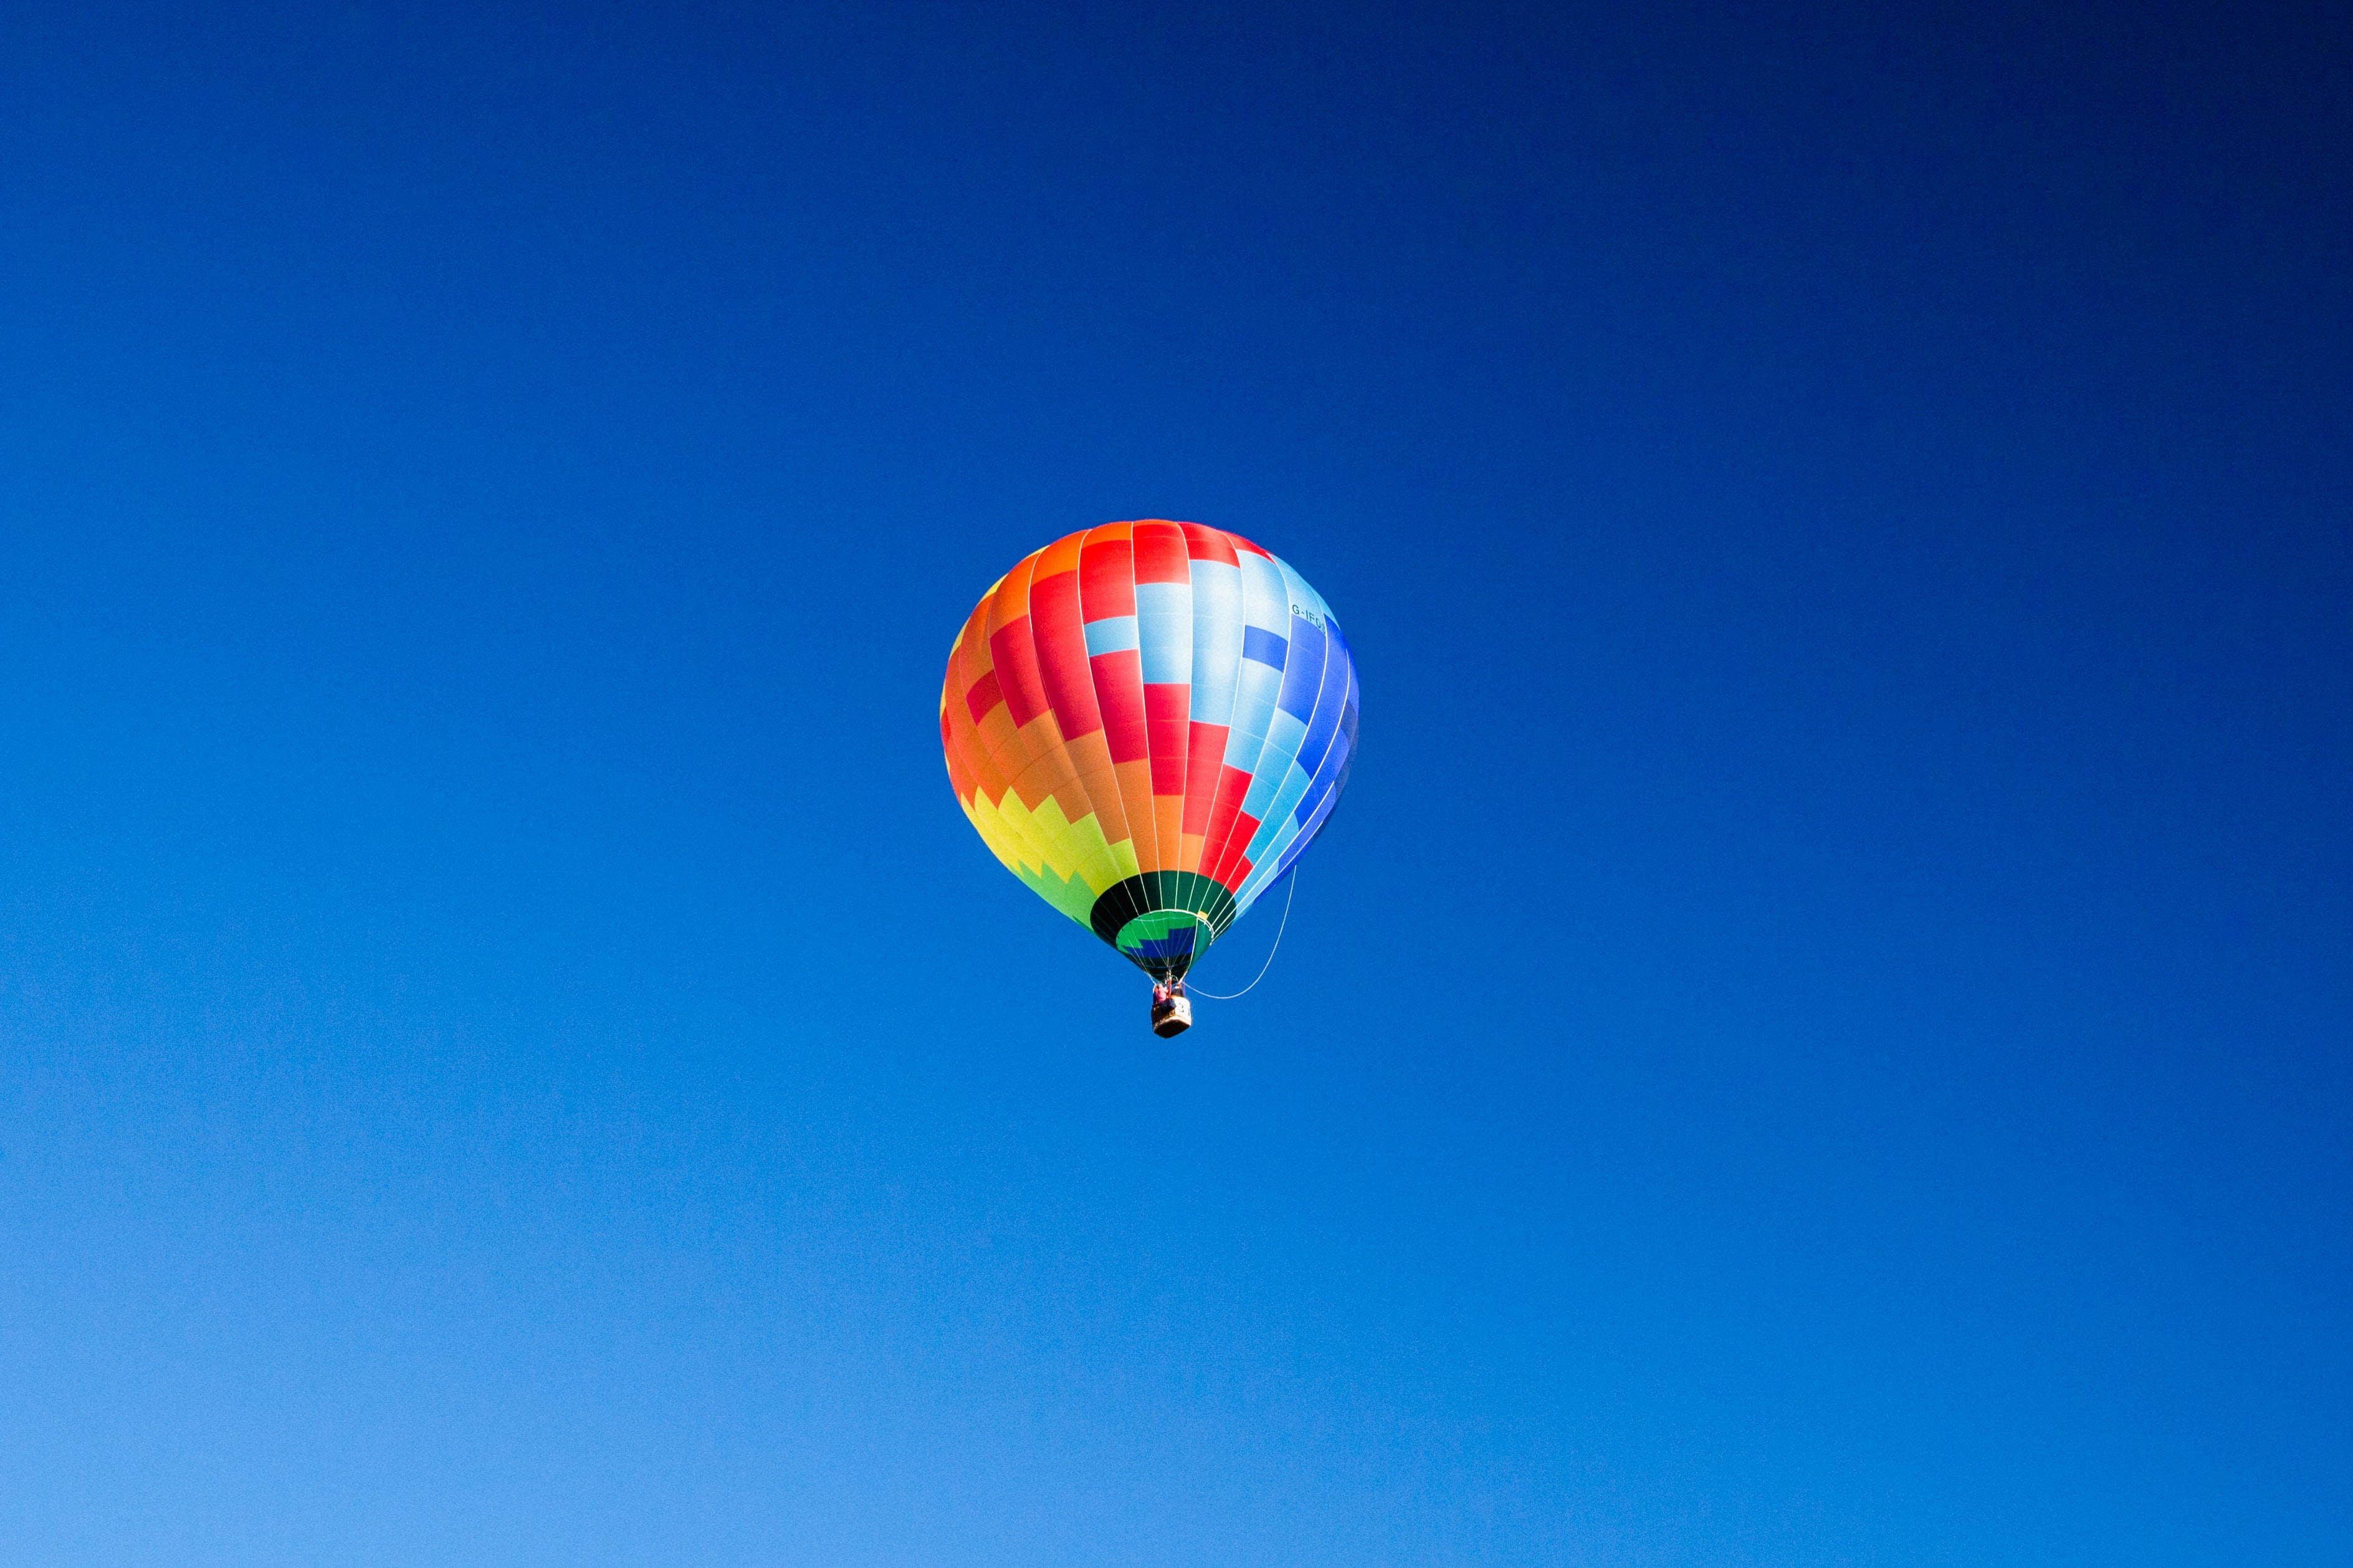 blue, orange, and red hot air balloon in mid air